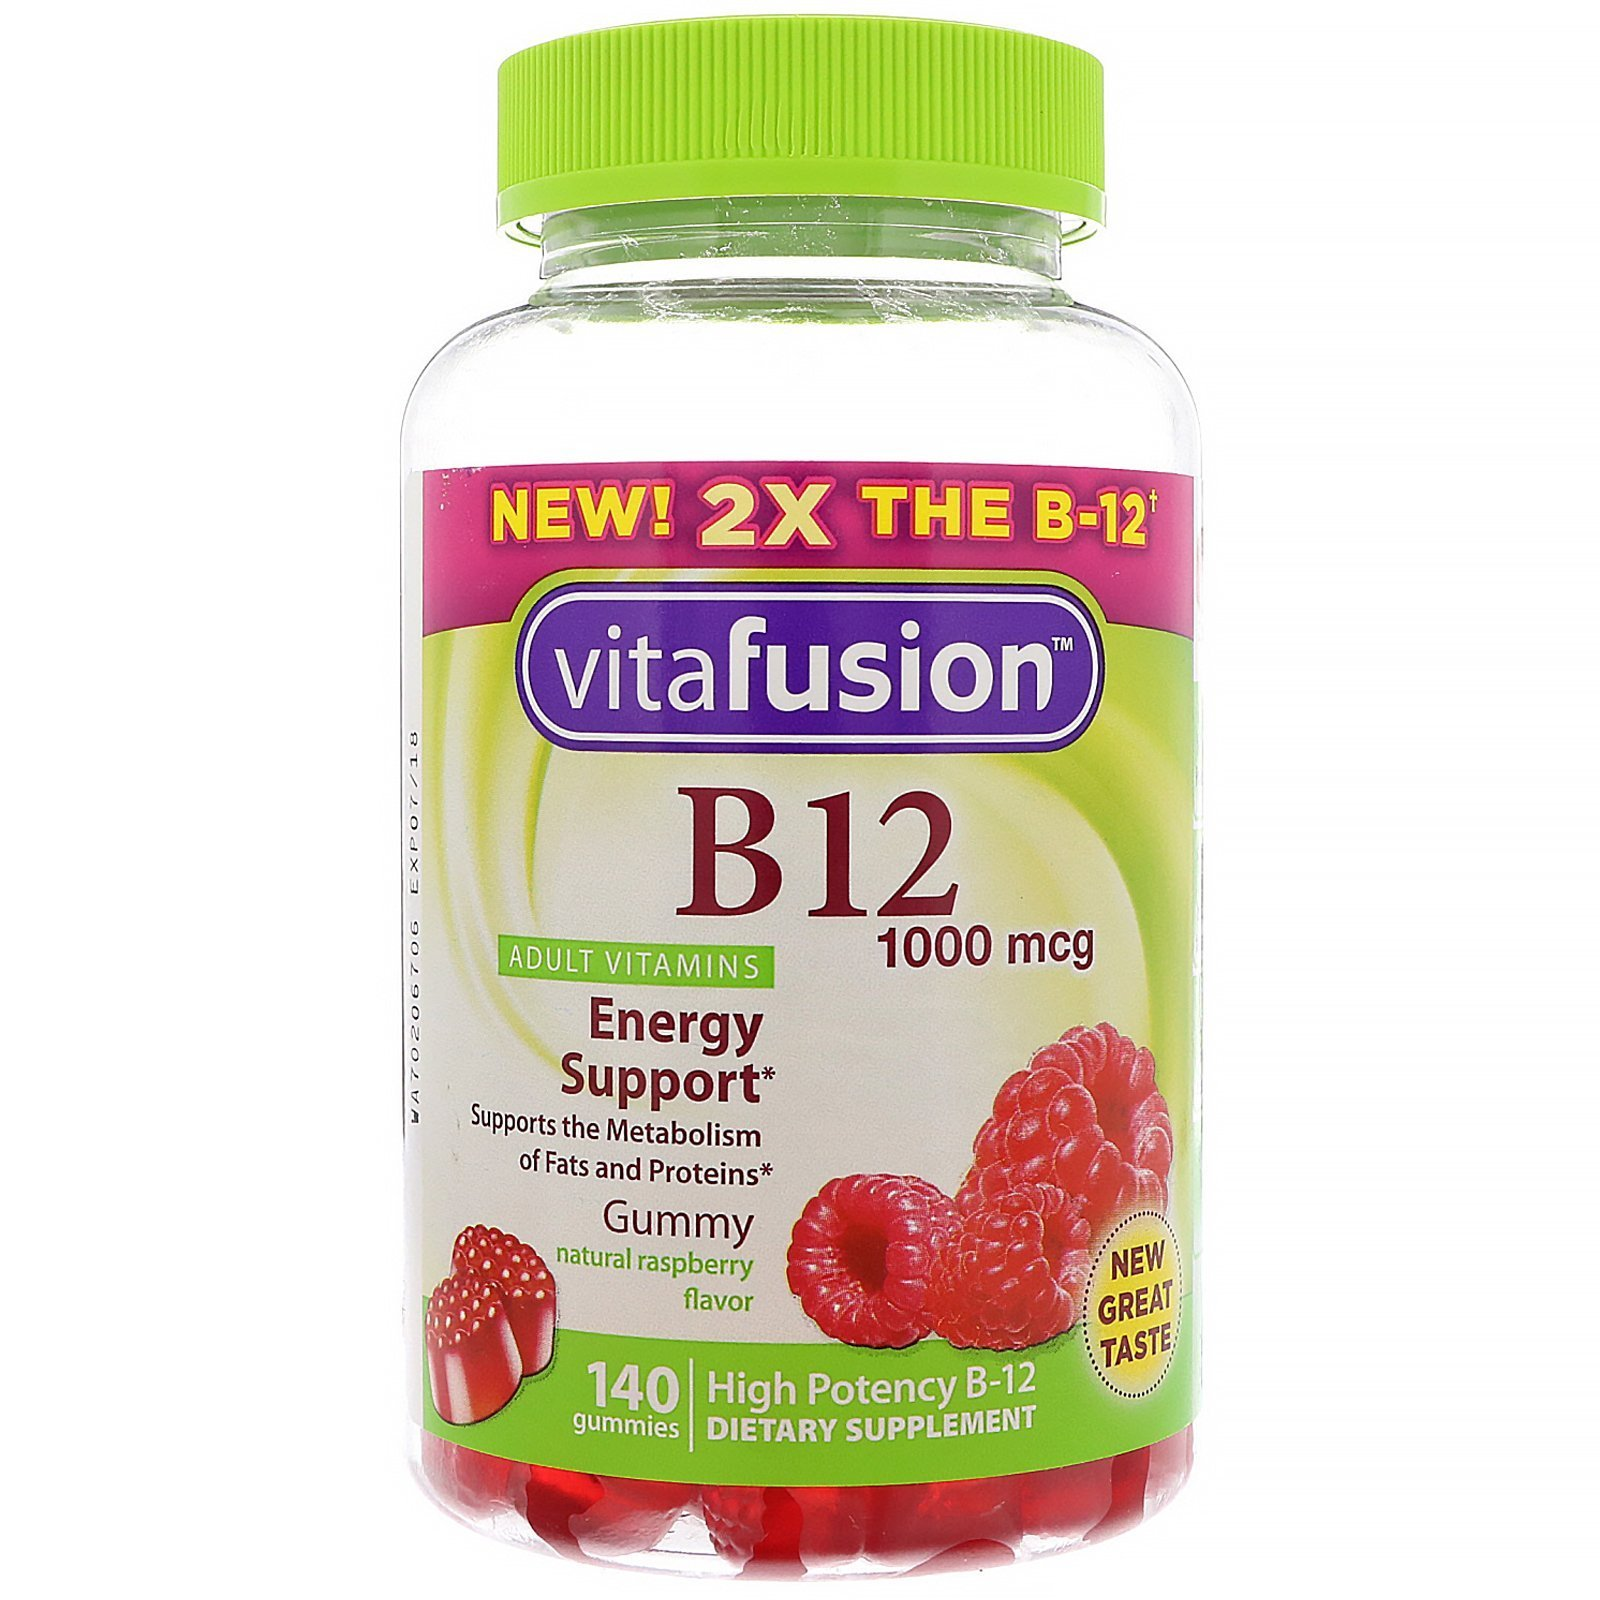 Vitamins For Energy >> Vitafusion B12 Adult Vitamins Energy Support Natural Raspberry Flavor 1000 Mcg 140 Gummies